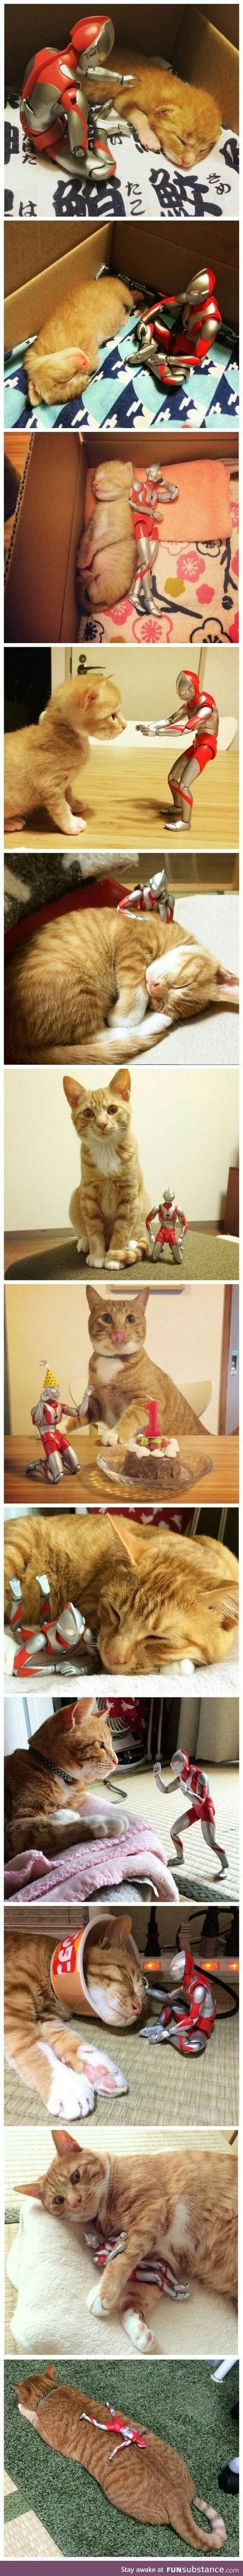 Ultra man and his cat